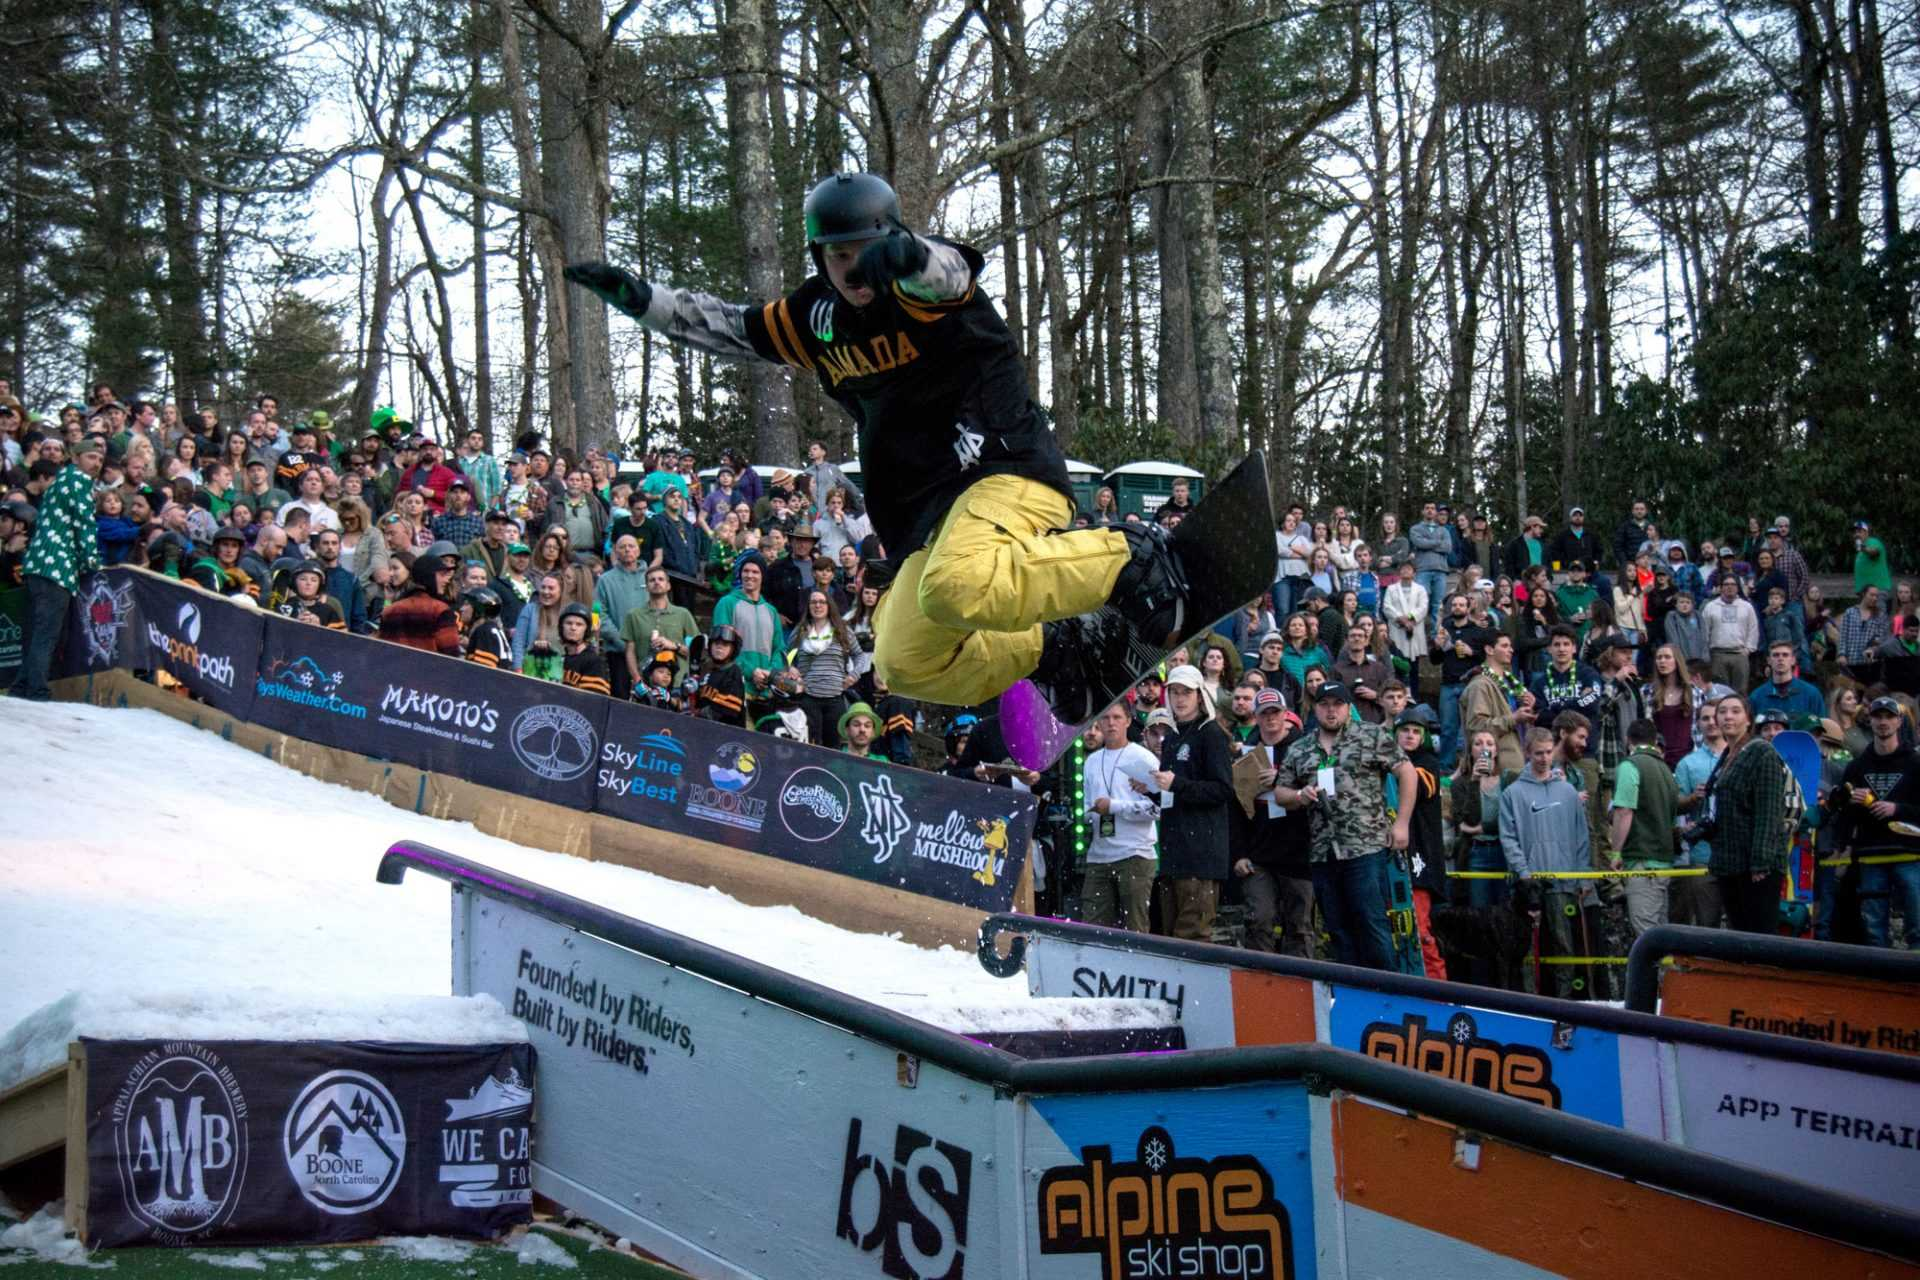 A snowboarder at Rail Jam leaps into the air off the ramp of the slope